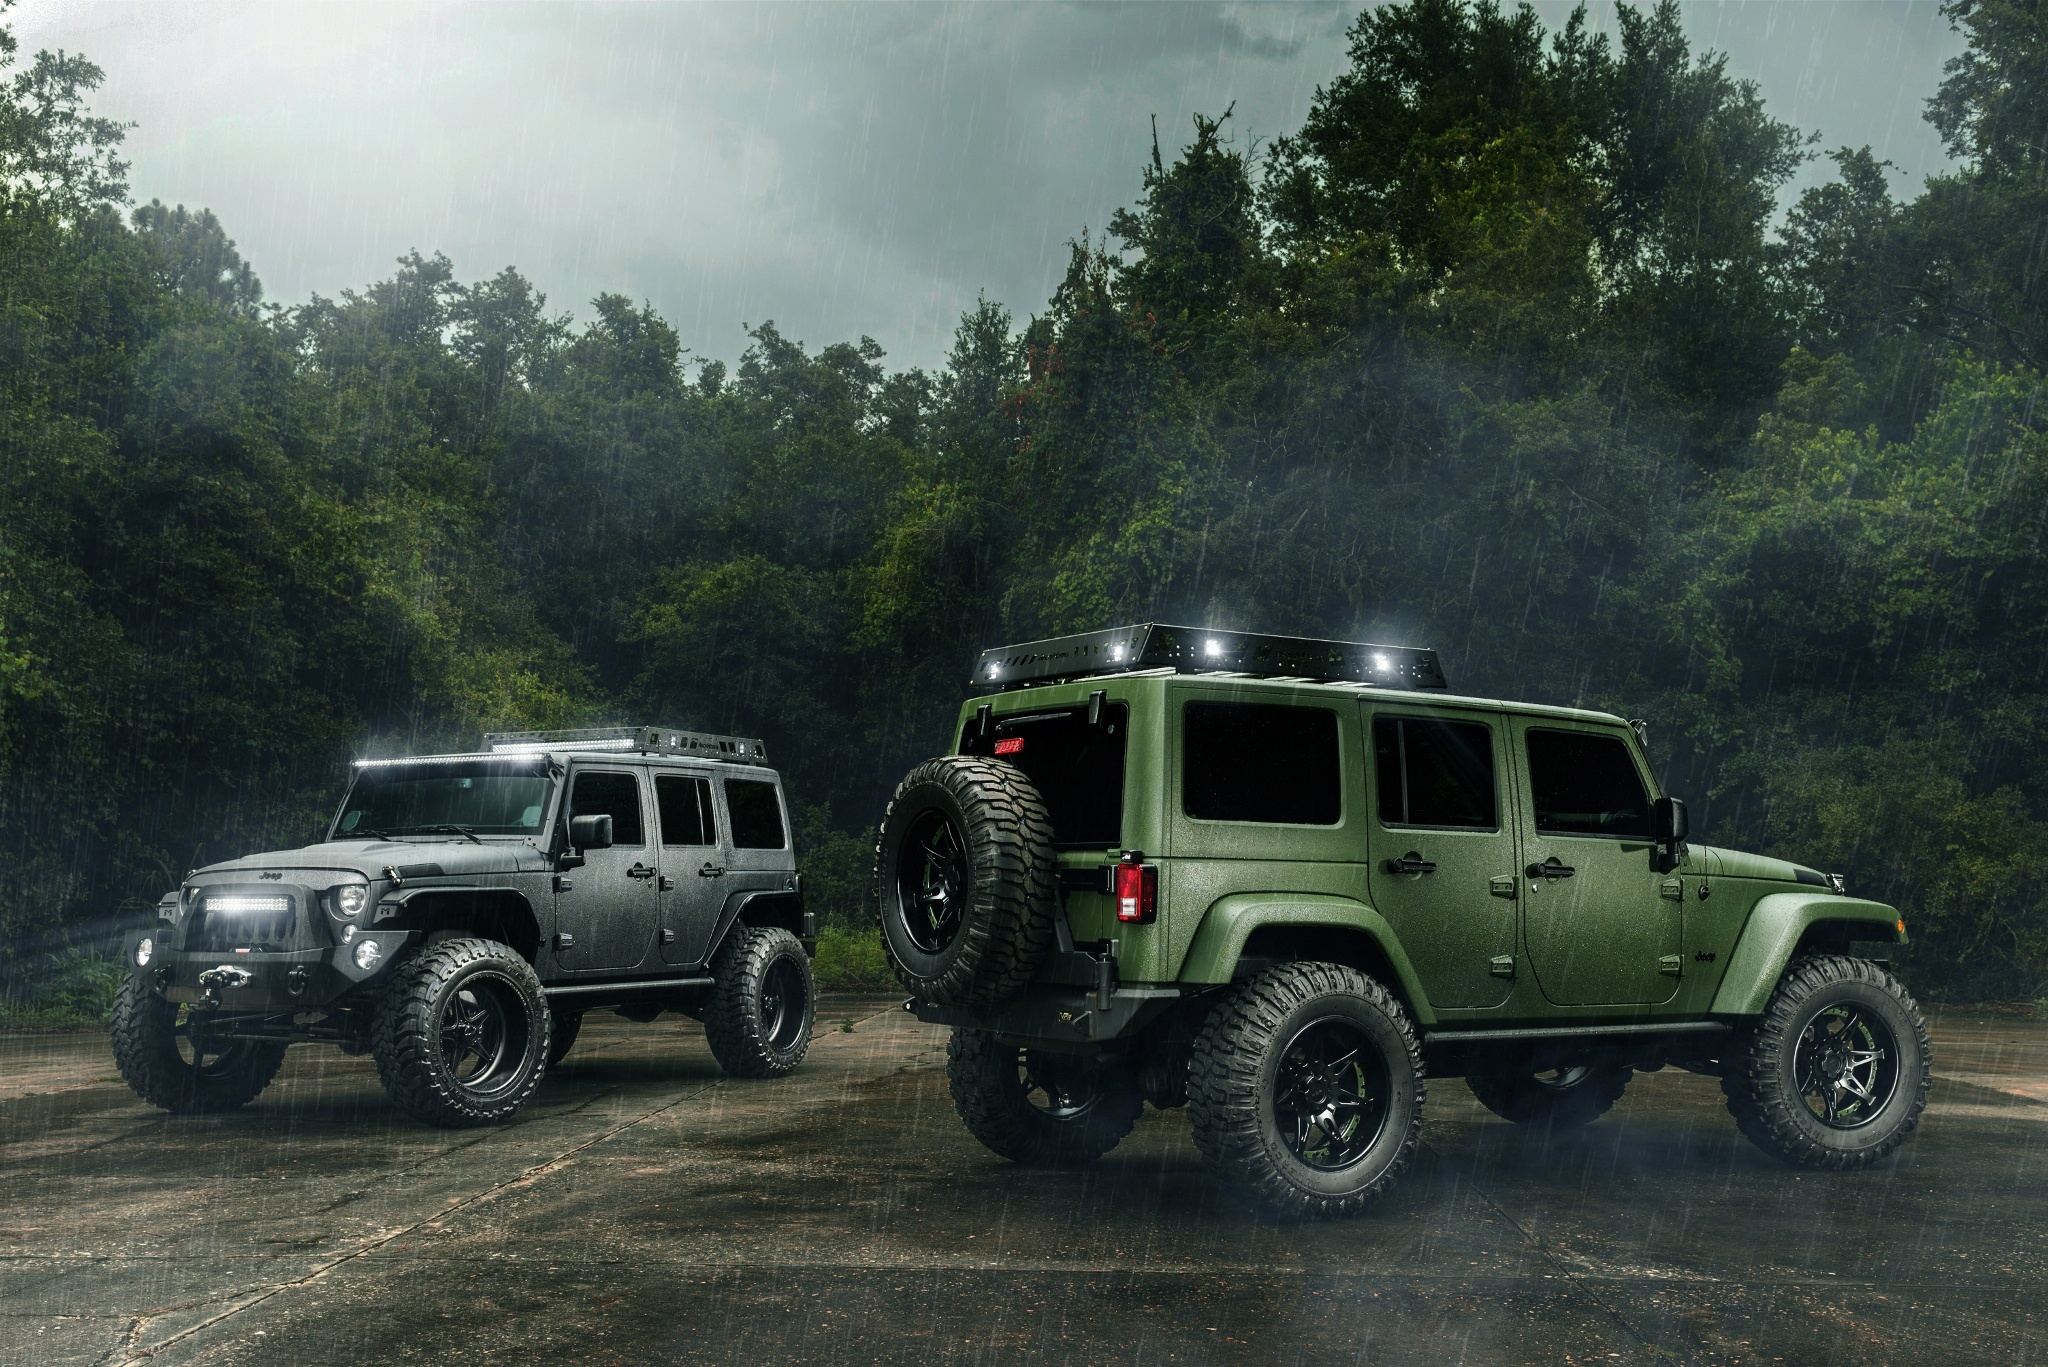 Jeep Jl Wrangler >> Off Road Jeep Wallpaper - WallpaperSafari